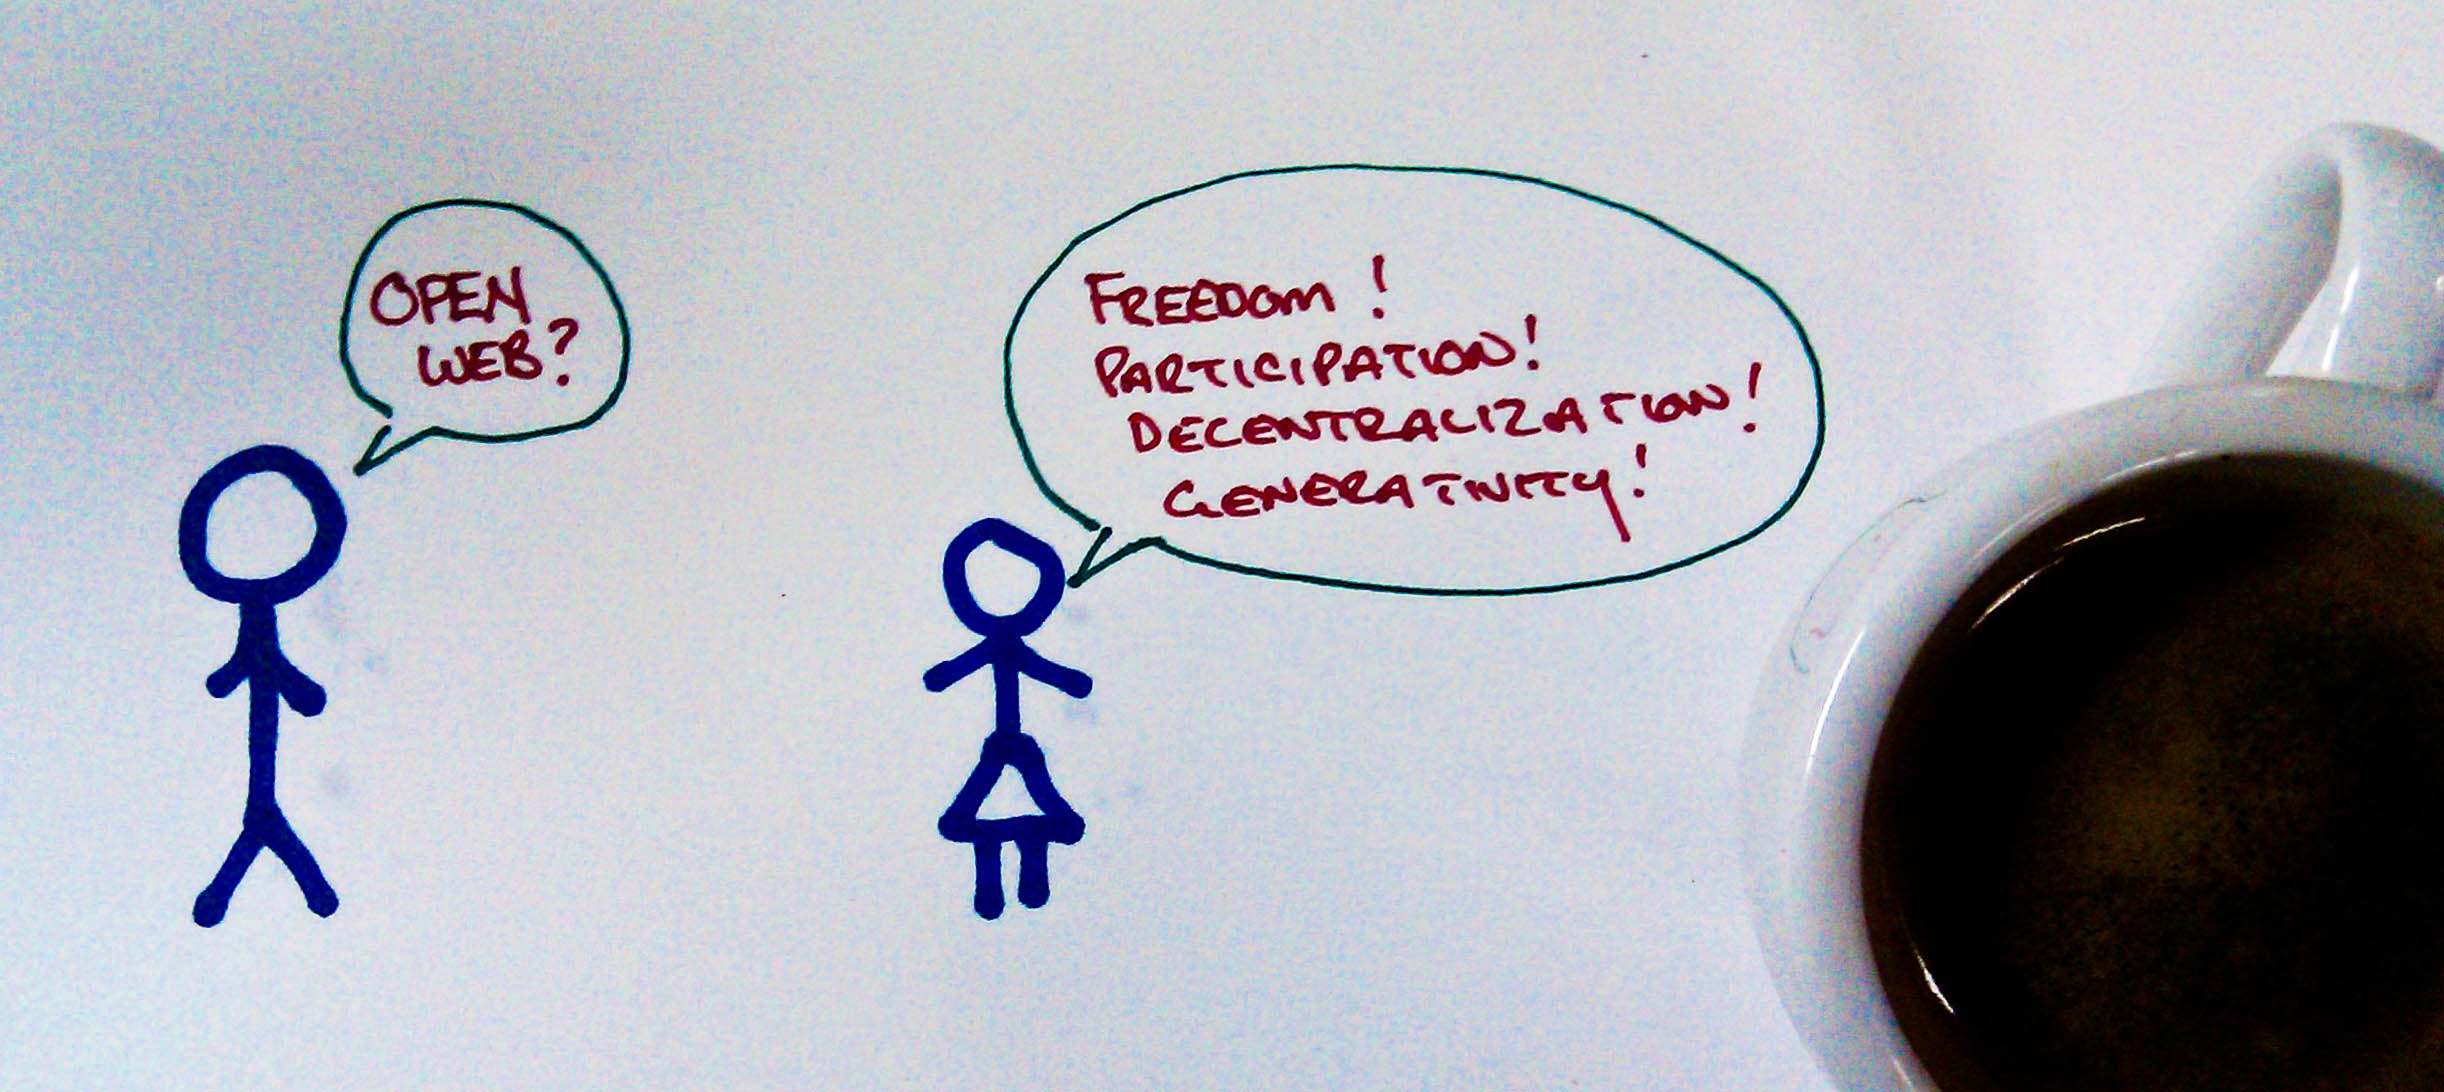 Open Web? Freedome, participation, decentralization, generativity